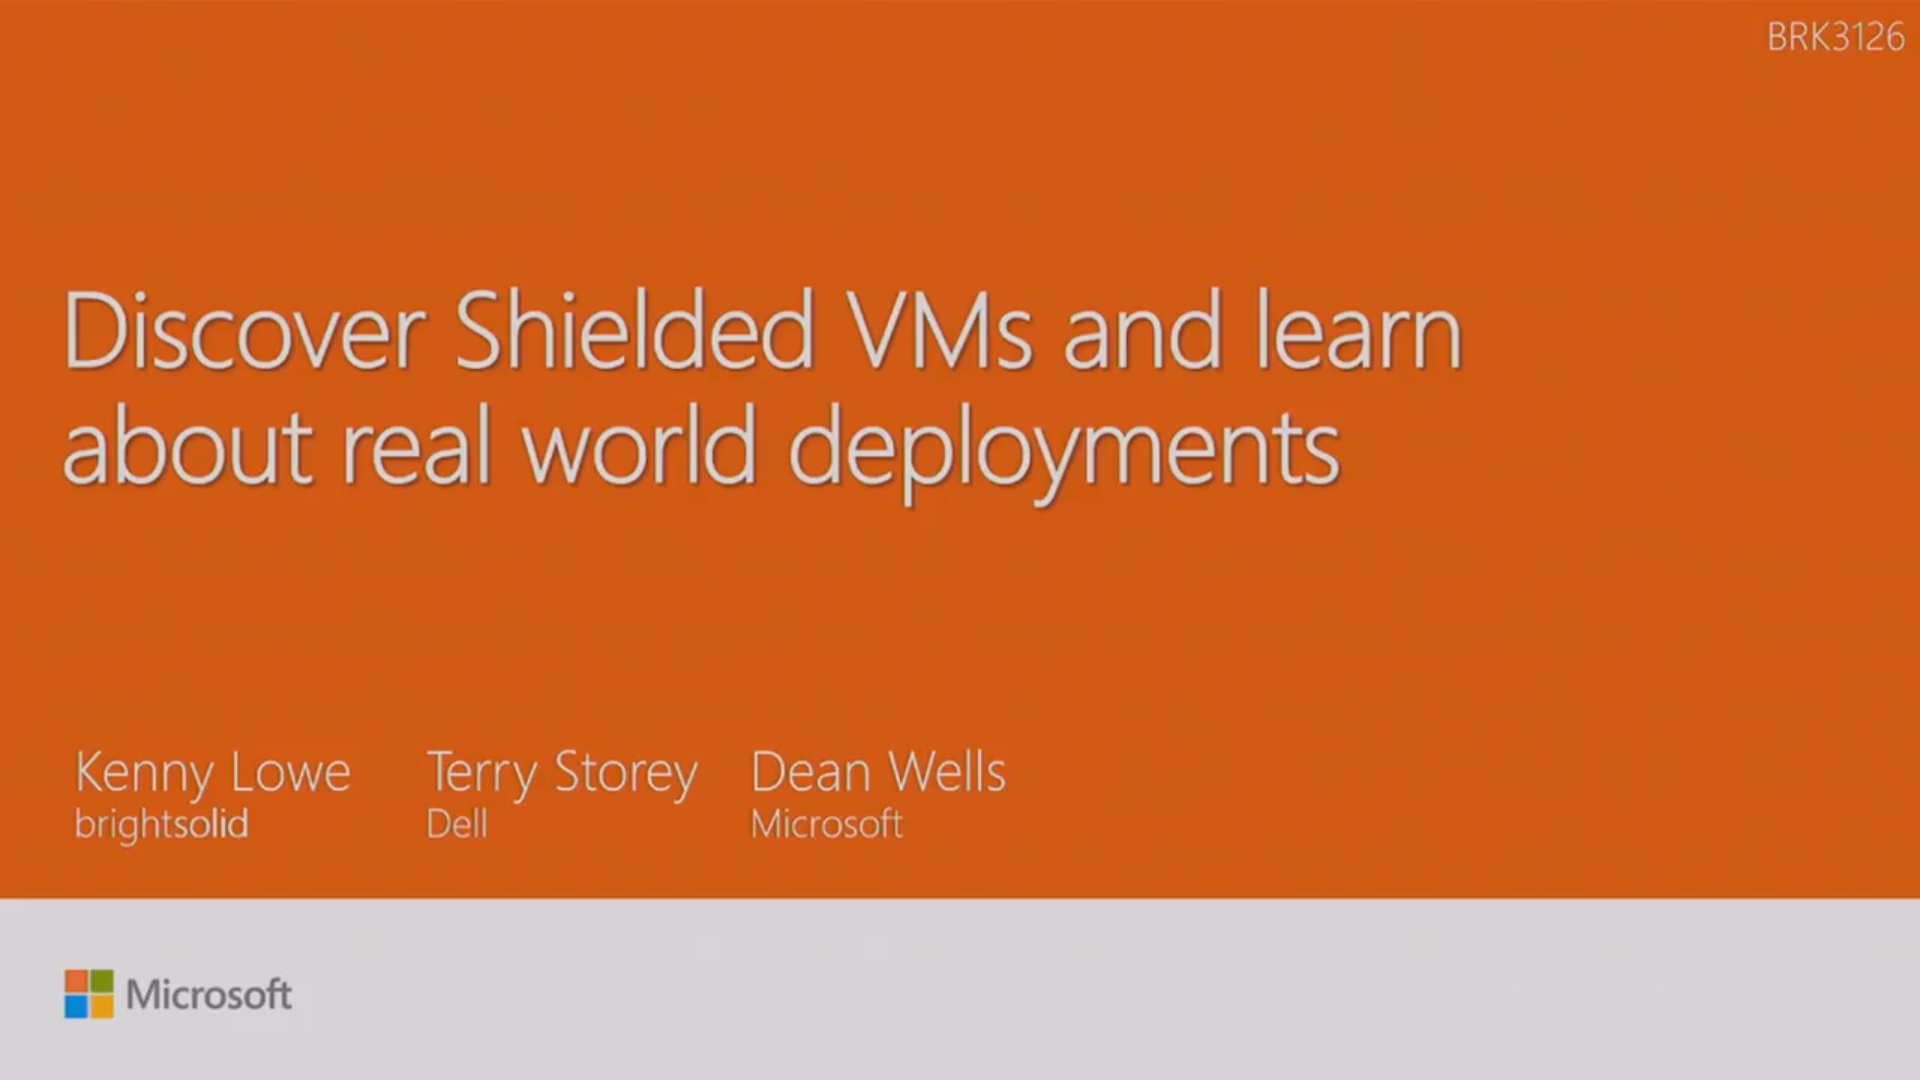 Ignite 2016 – Discover Shielded VMs And Learn About Real World Deployments